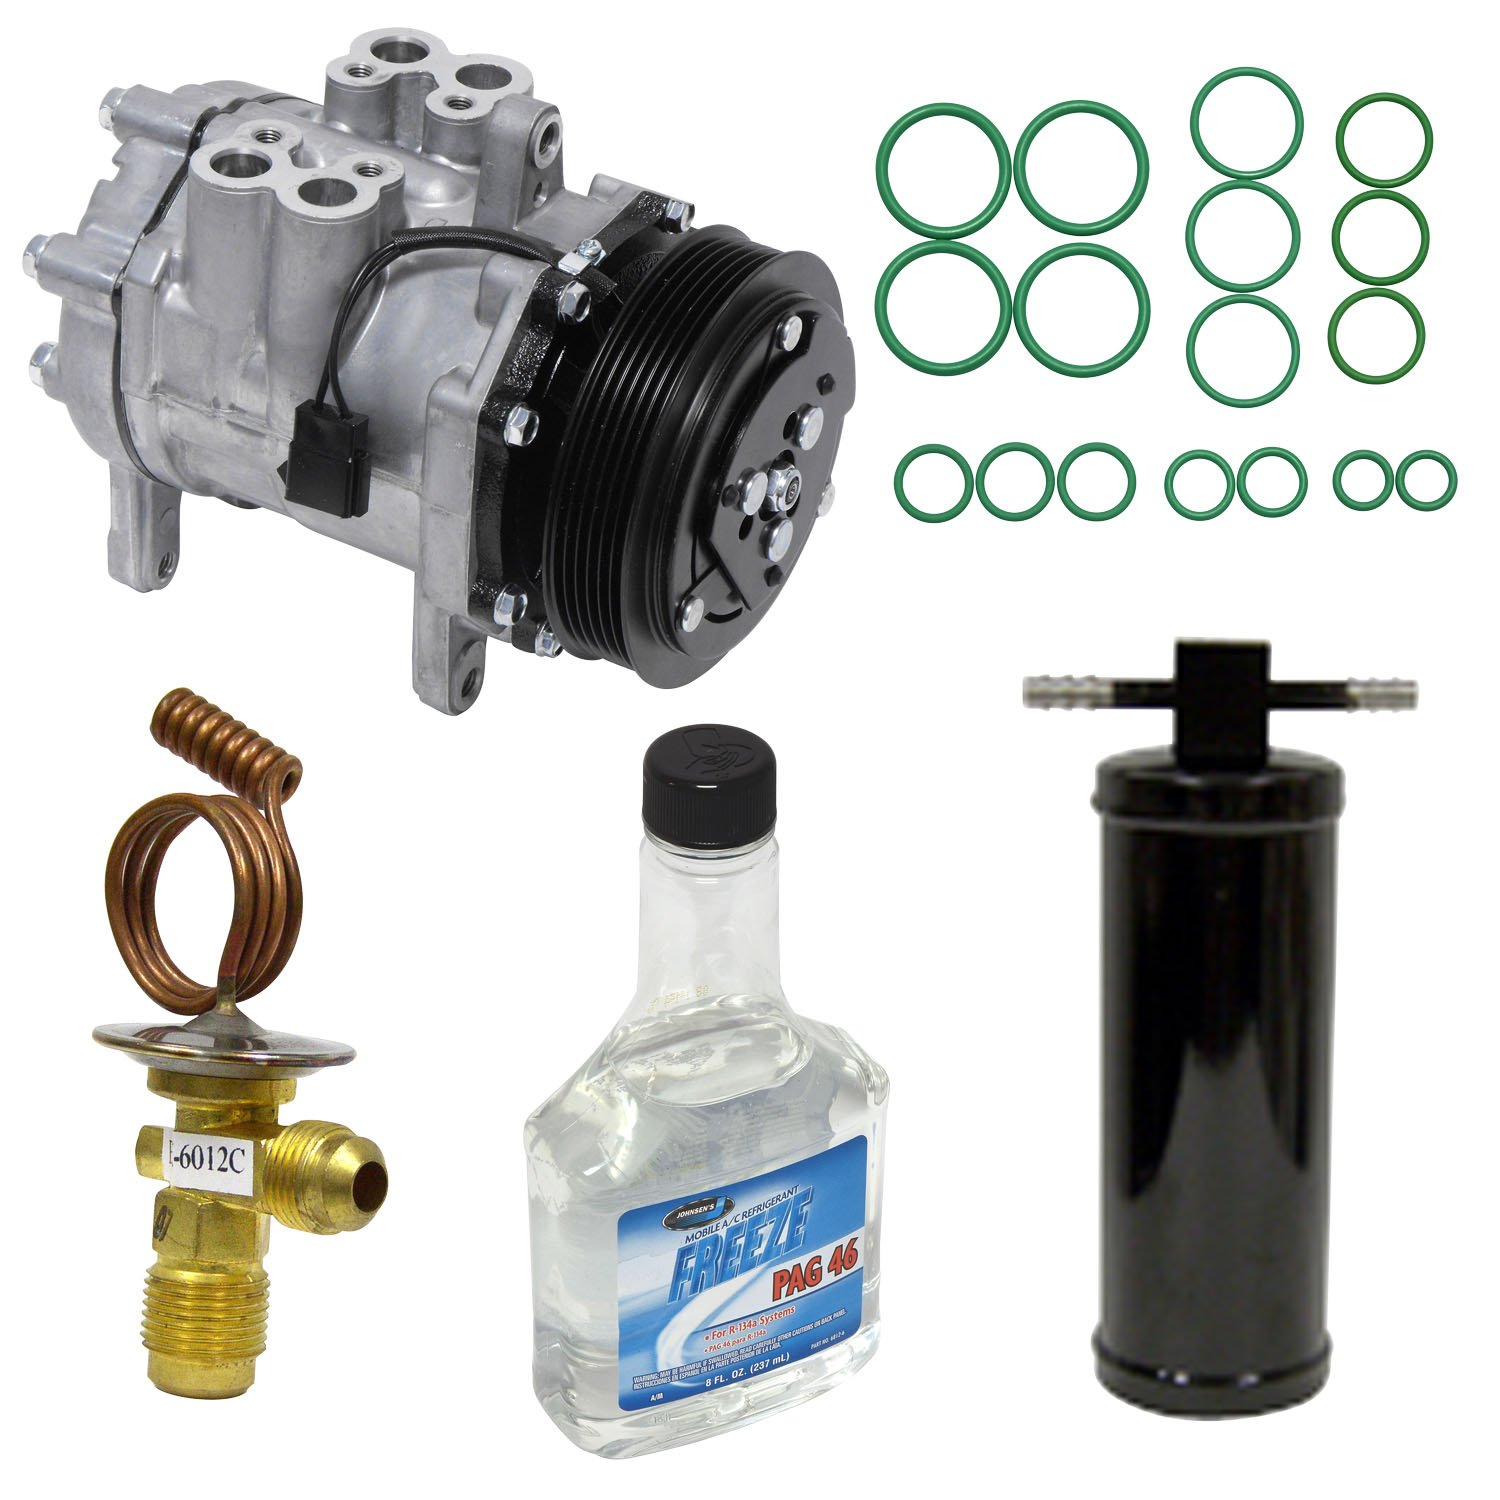 Amazon.com: Universal Air Conditioner KT 4550 A/C Compressor and Component Kit: Automotive